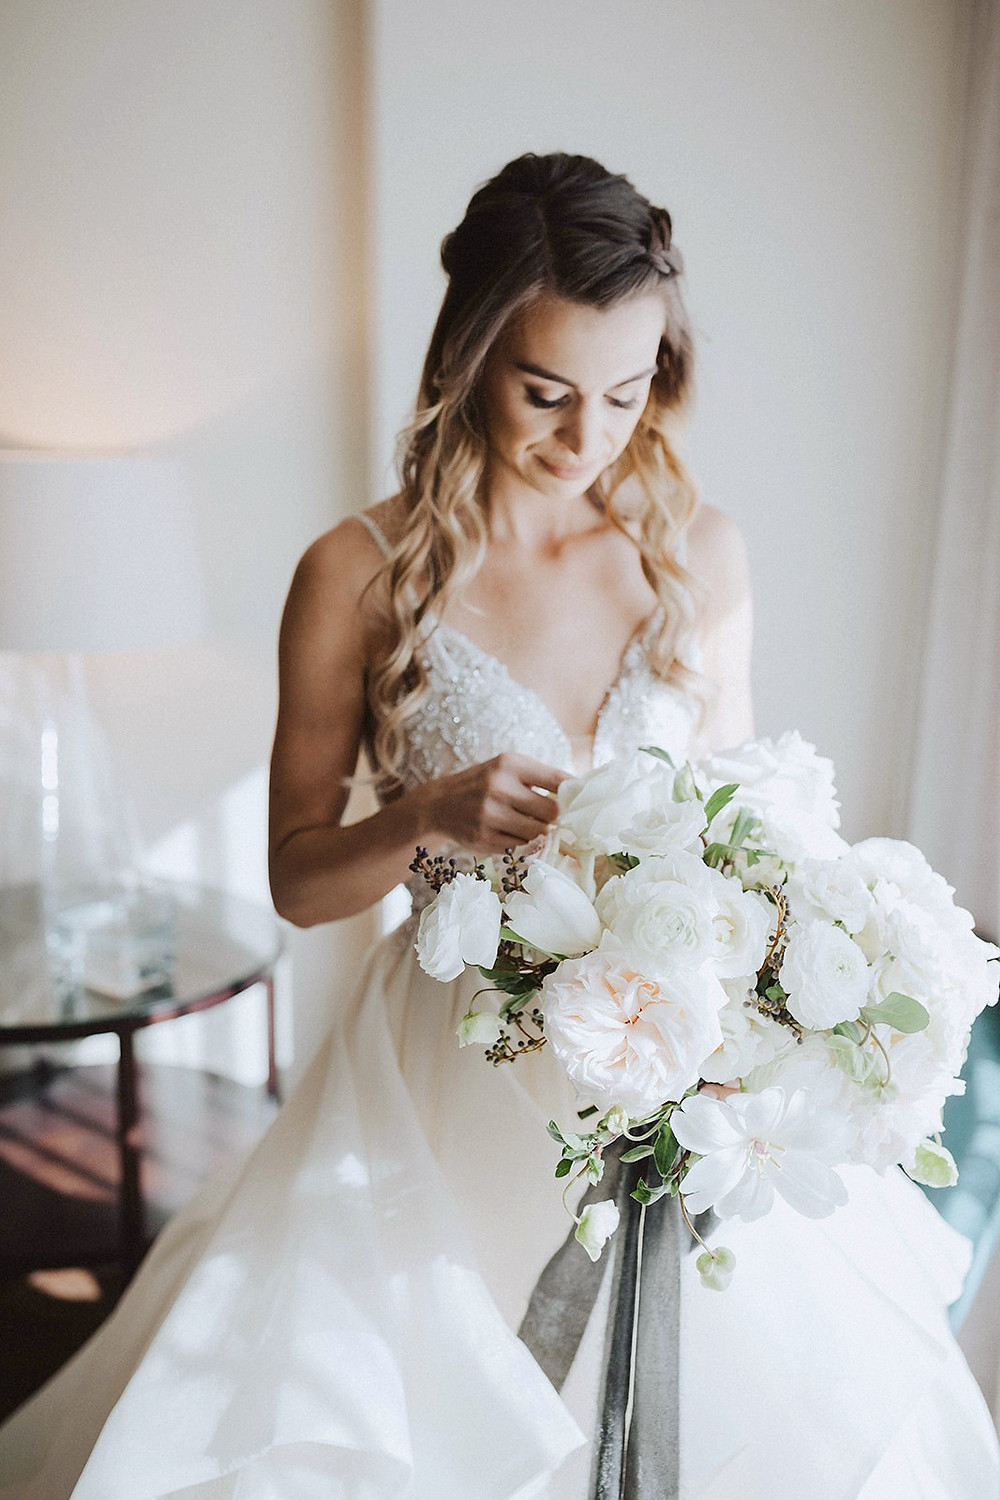 Elegant white, blush and black bouquet for a Black Tie wedding in downtown San Diego, filled with garden roses, tulips, ranunculus and hellebores, made by San Diego Wedding Florist, Le Champagne Projects